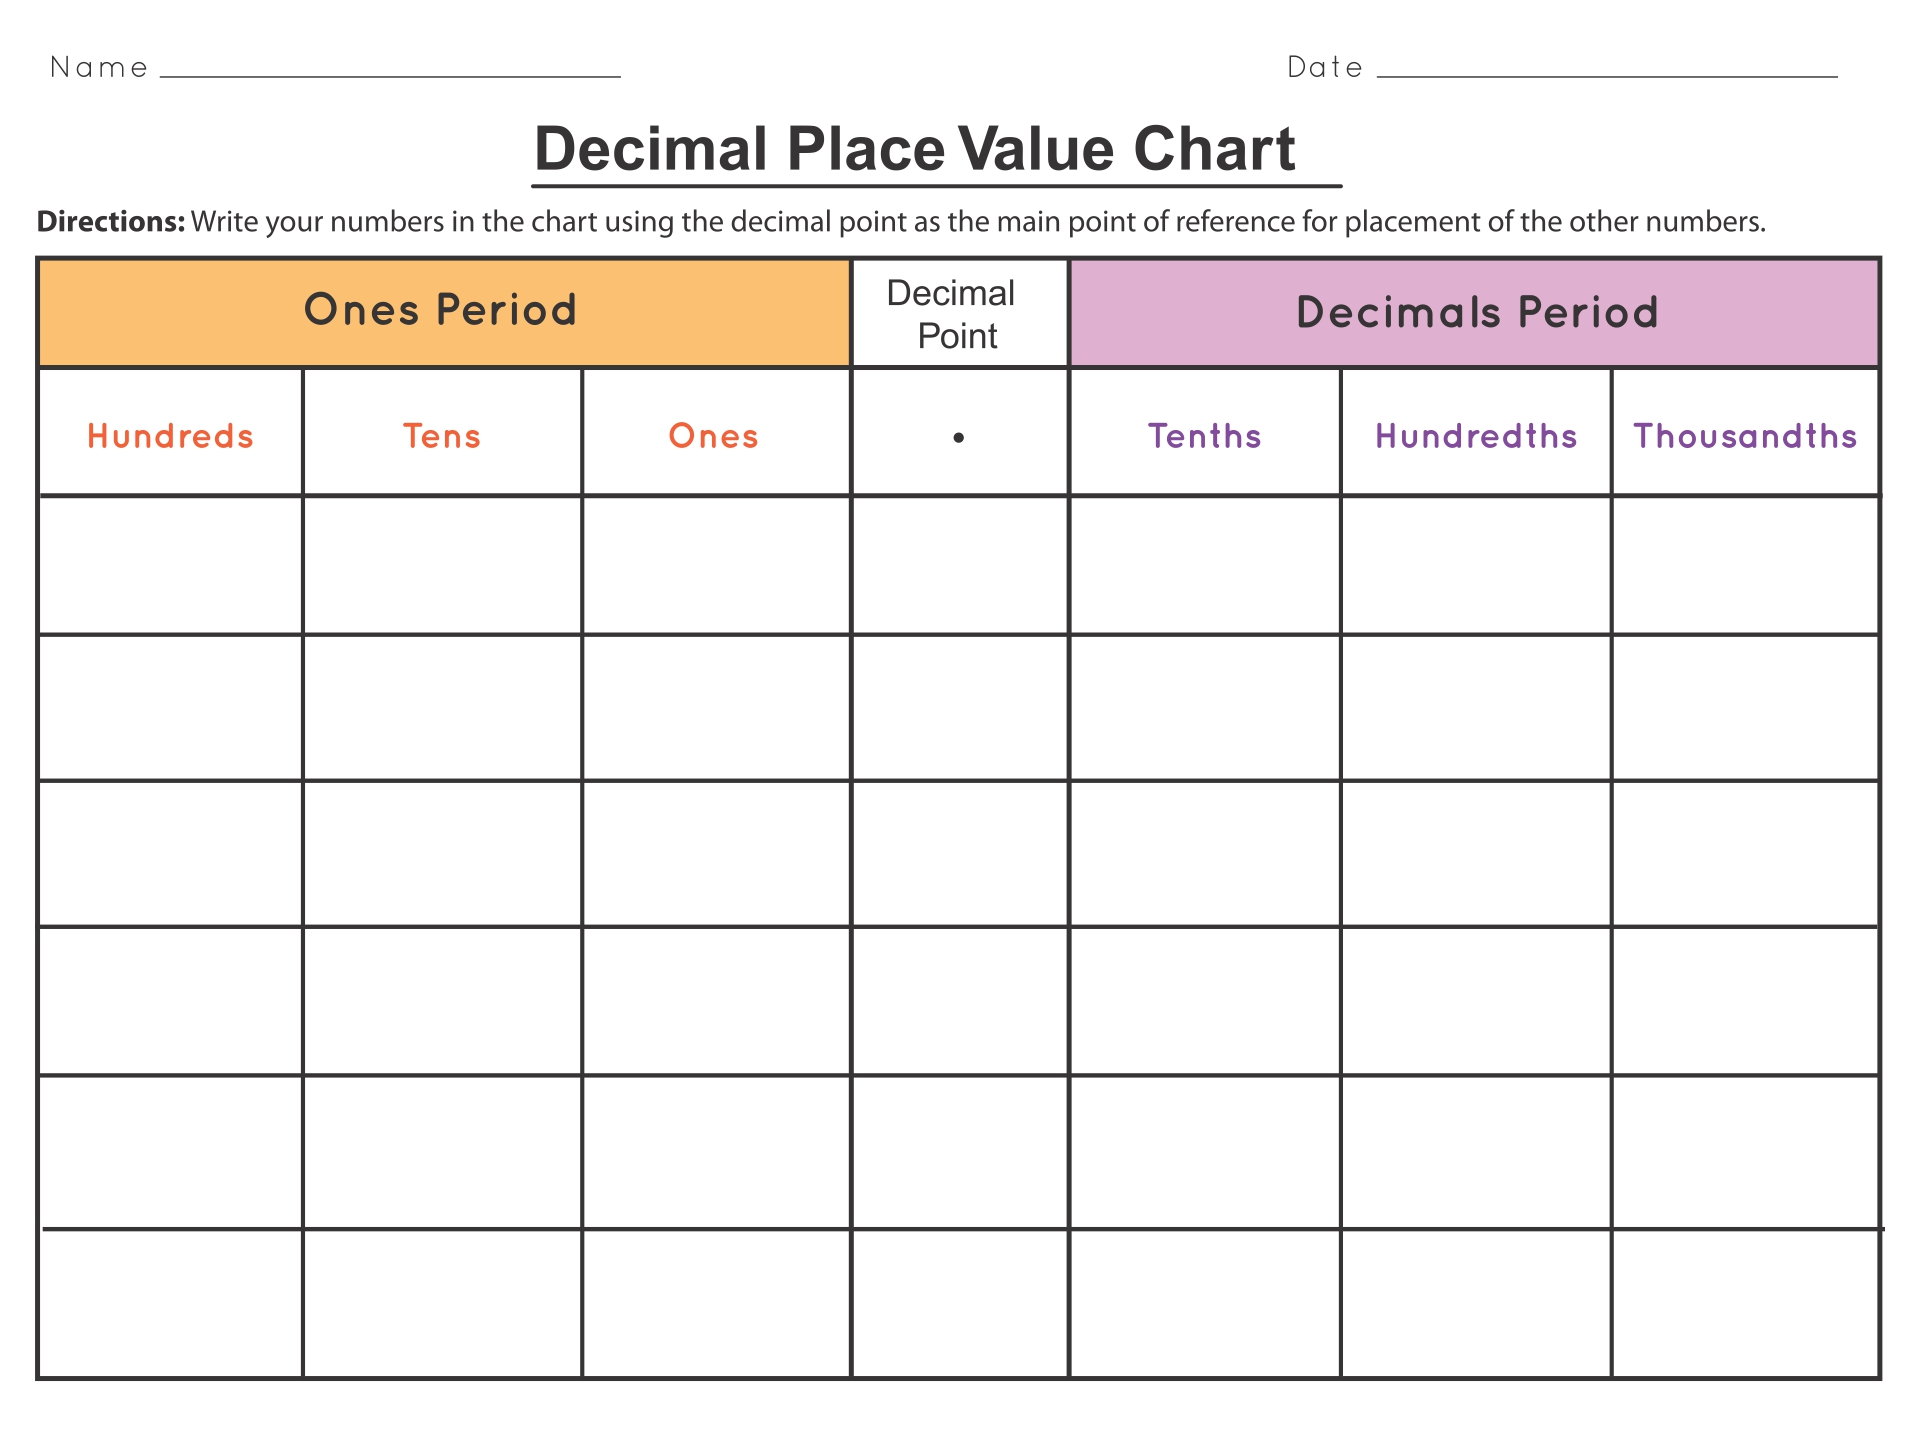 Place Value Chart with Decimals